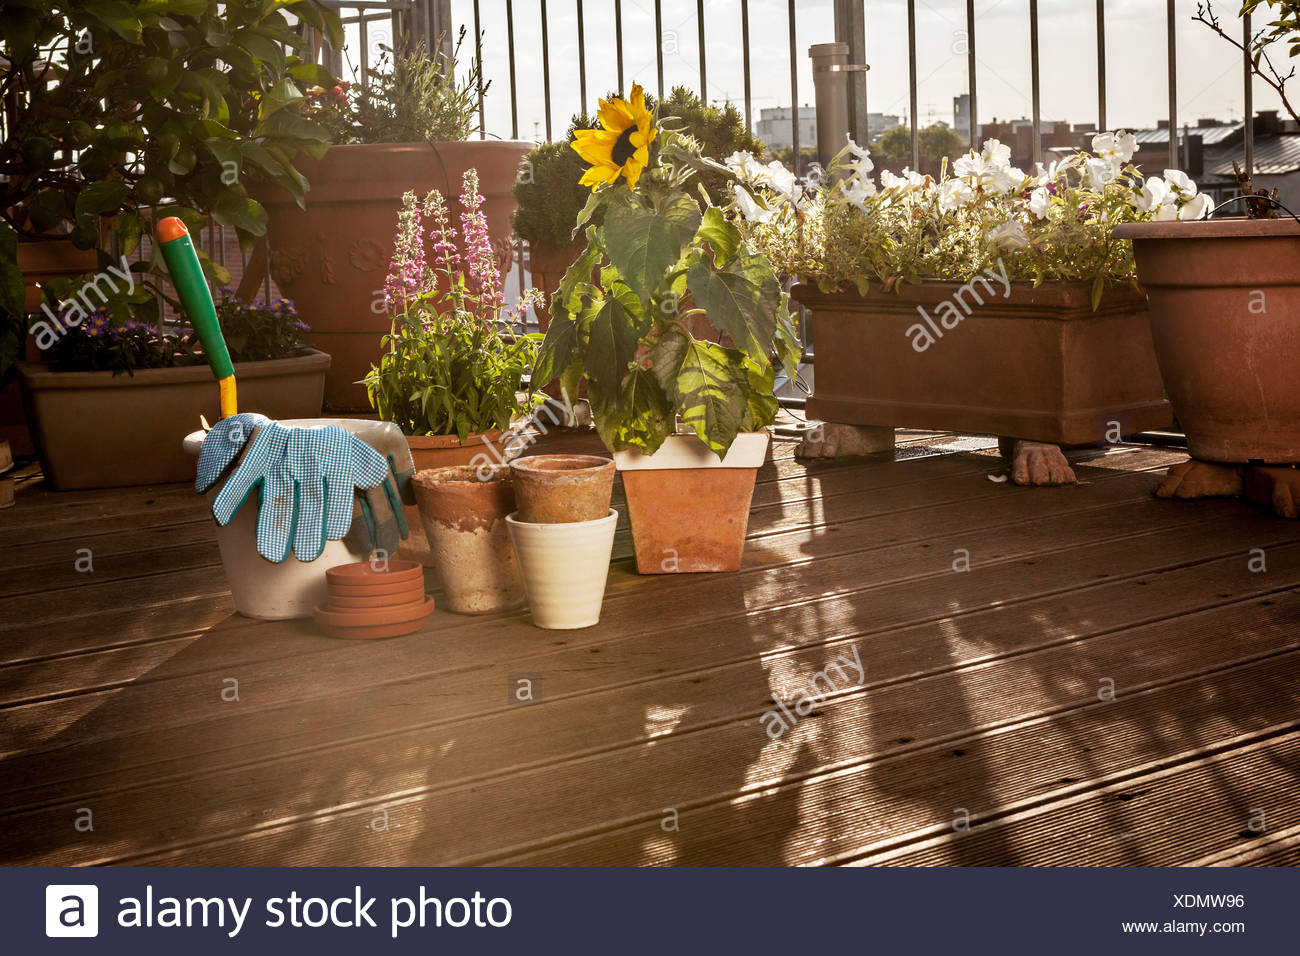 Flower Pots And Garden Tools On Balcony, Munich, Bavaria, Germany, Europe - Stock Image